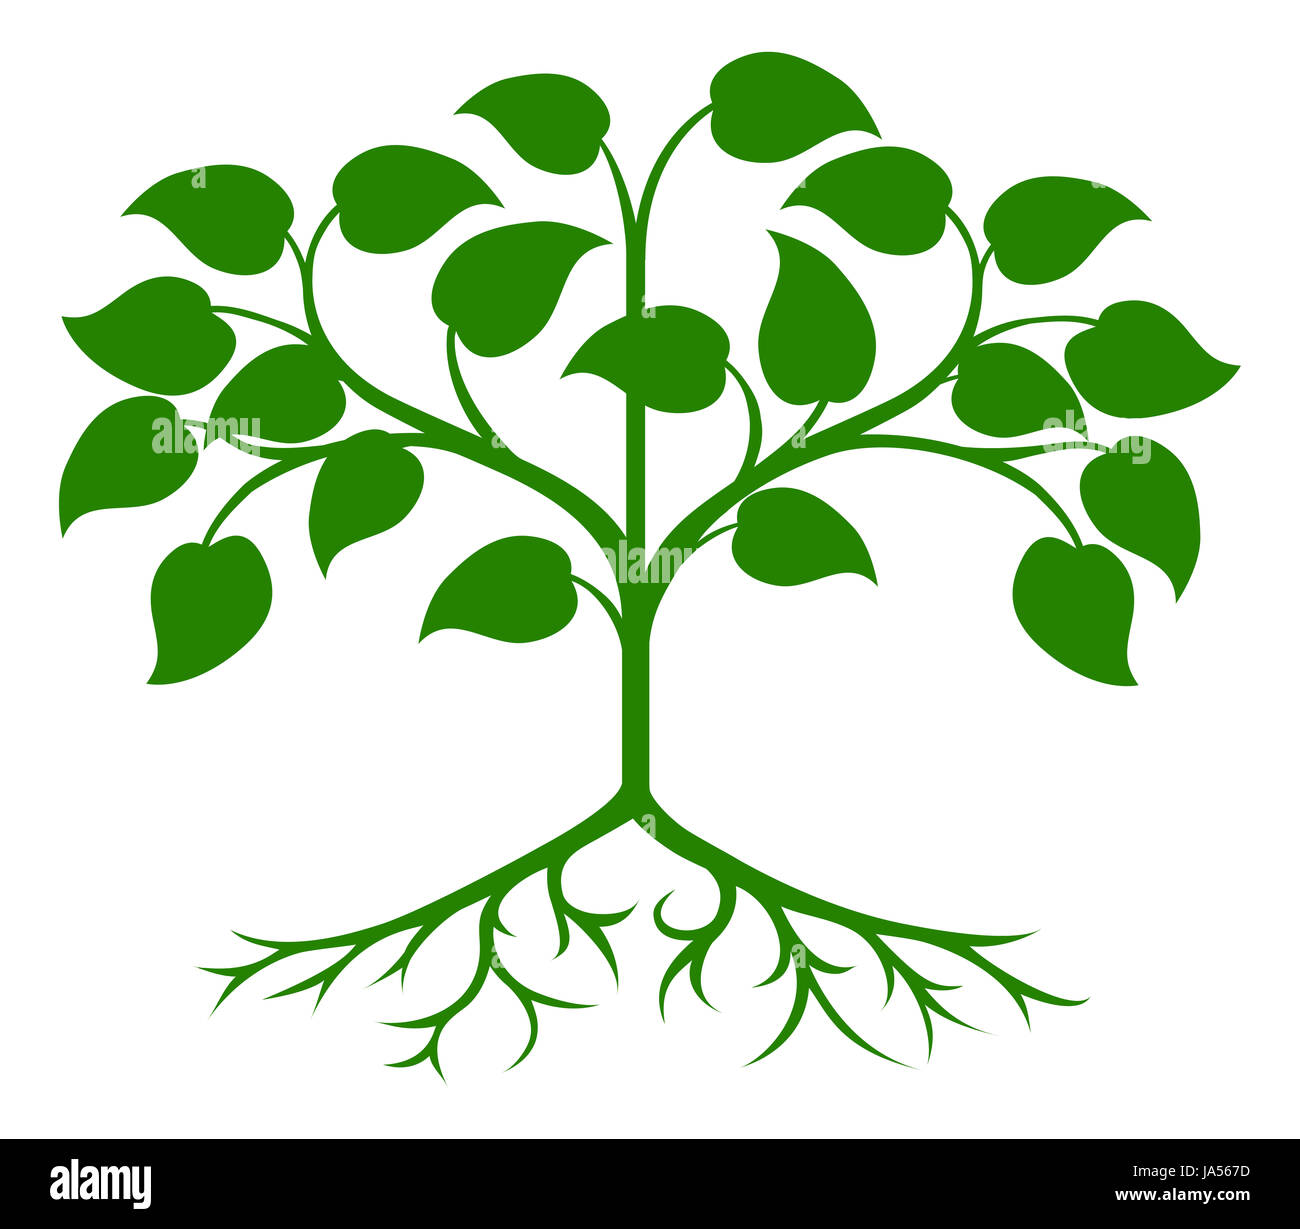 An illustration of an abstract green stylised tree - Stock Image